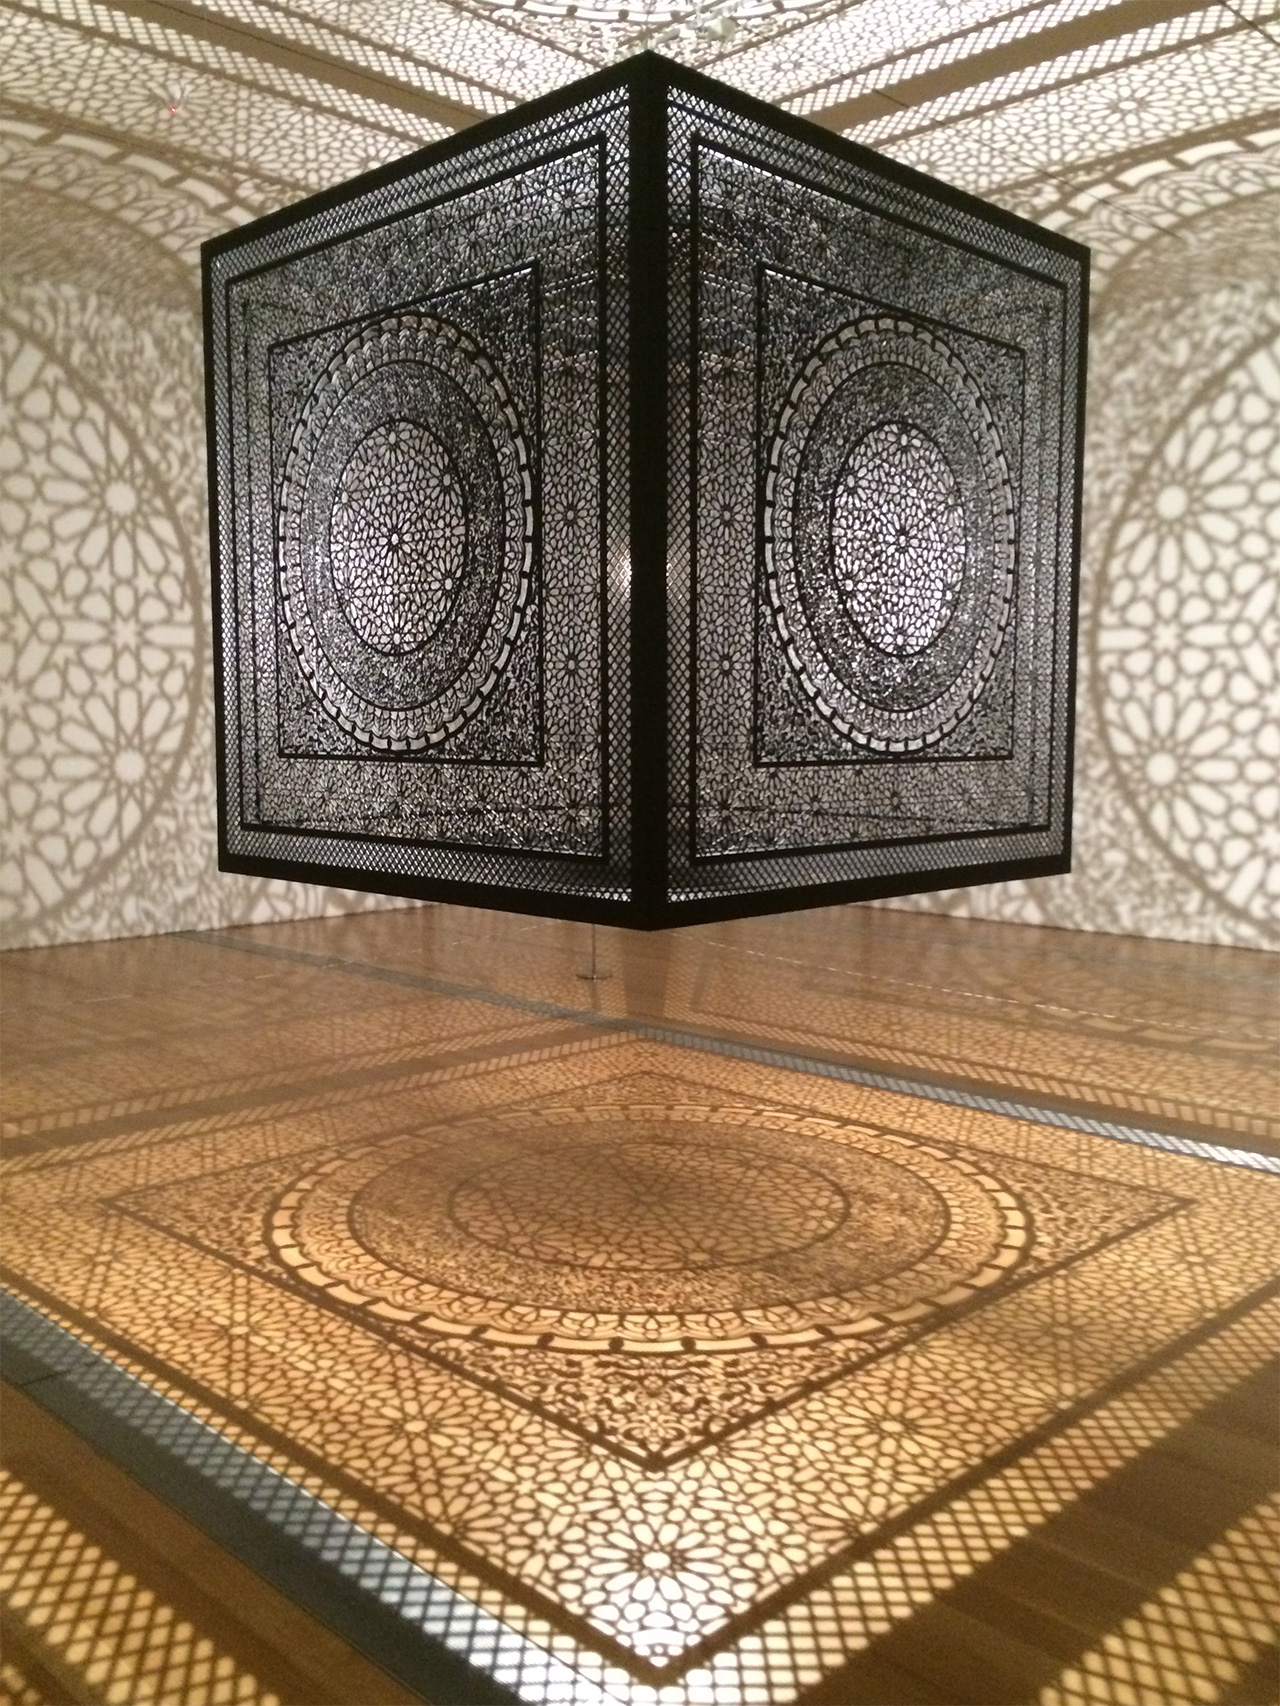 """Anila Quayyum Agha's """"Intersections"""" at the Grand Rapids Art Museum (all photos by Hrag Vartanian for Hyperallergic)"""